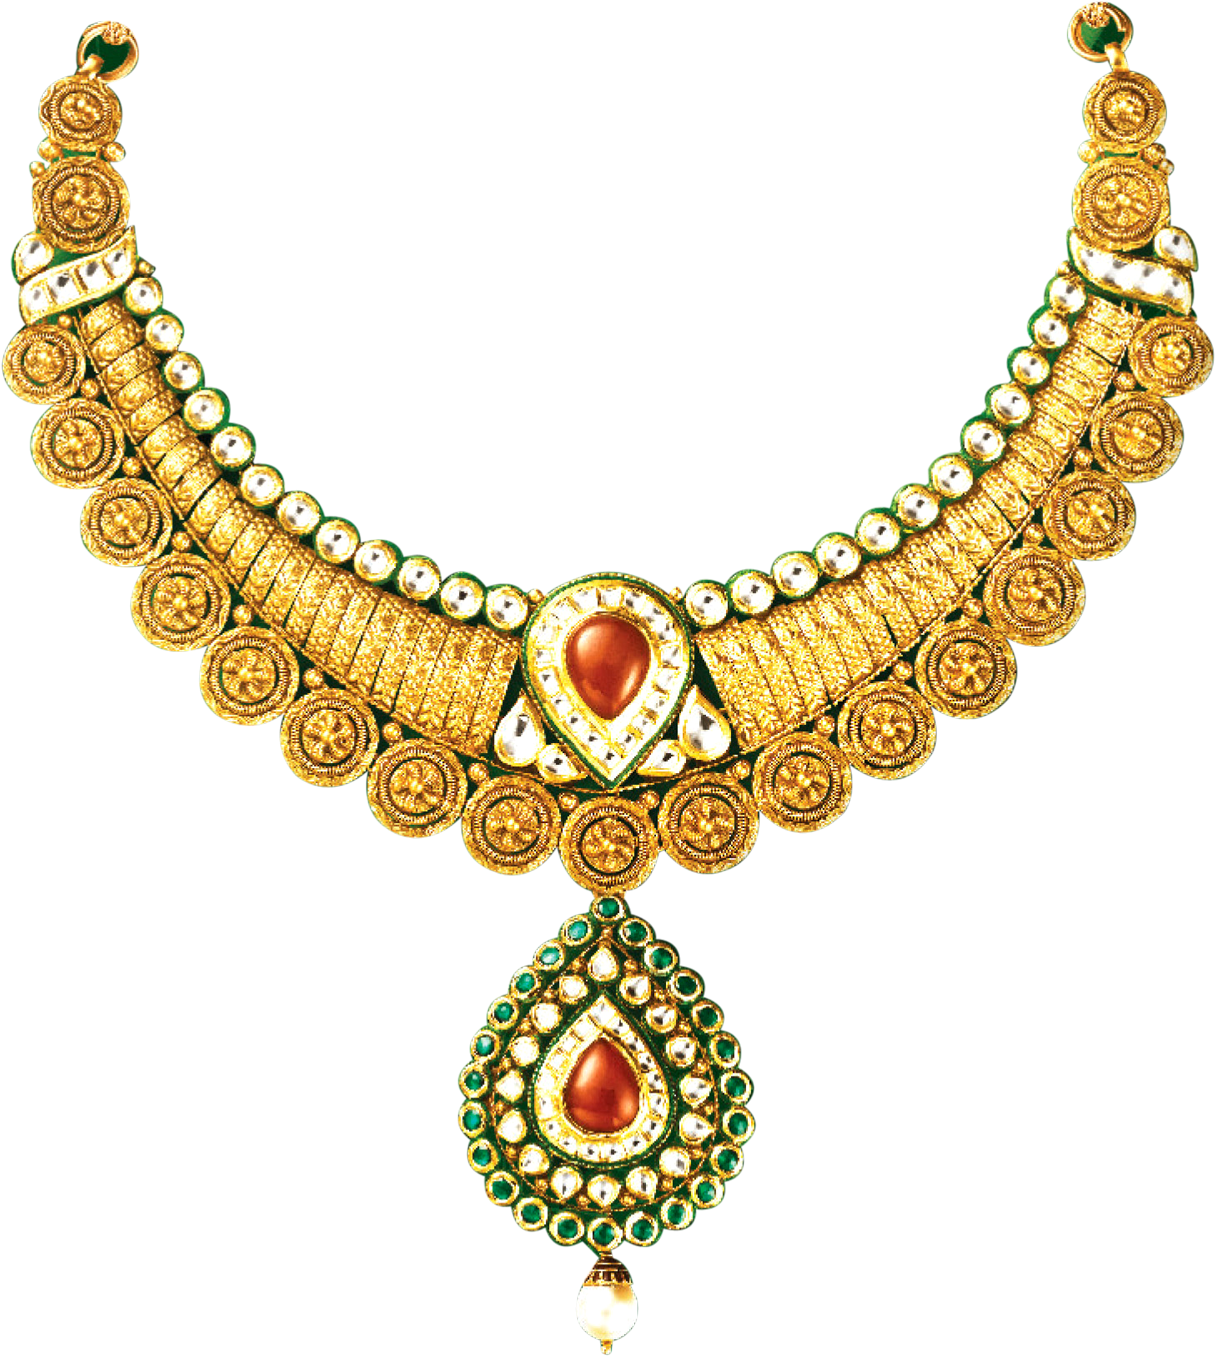 Download Tanishq Festival Jewellery Hd Png Cut Out Image.